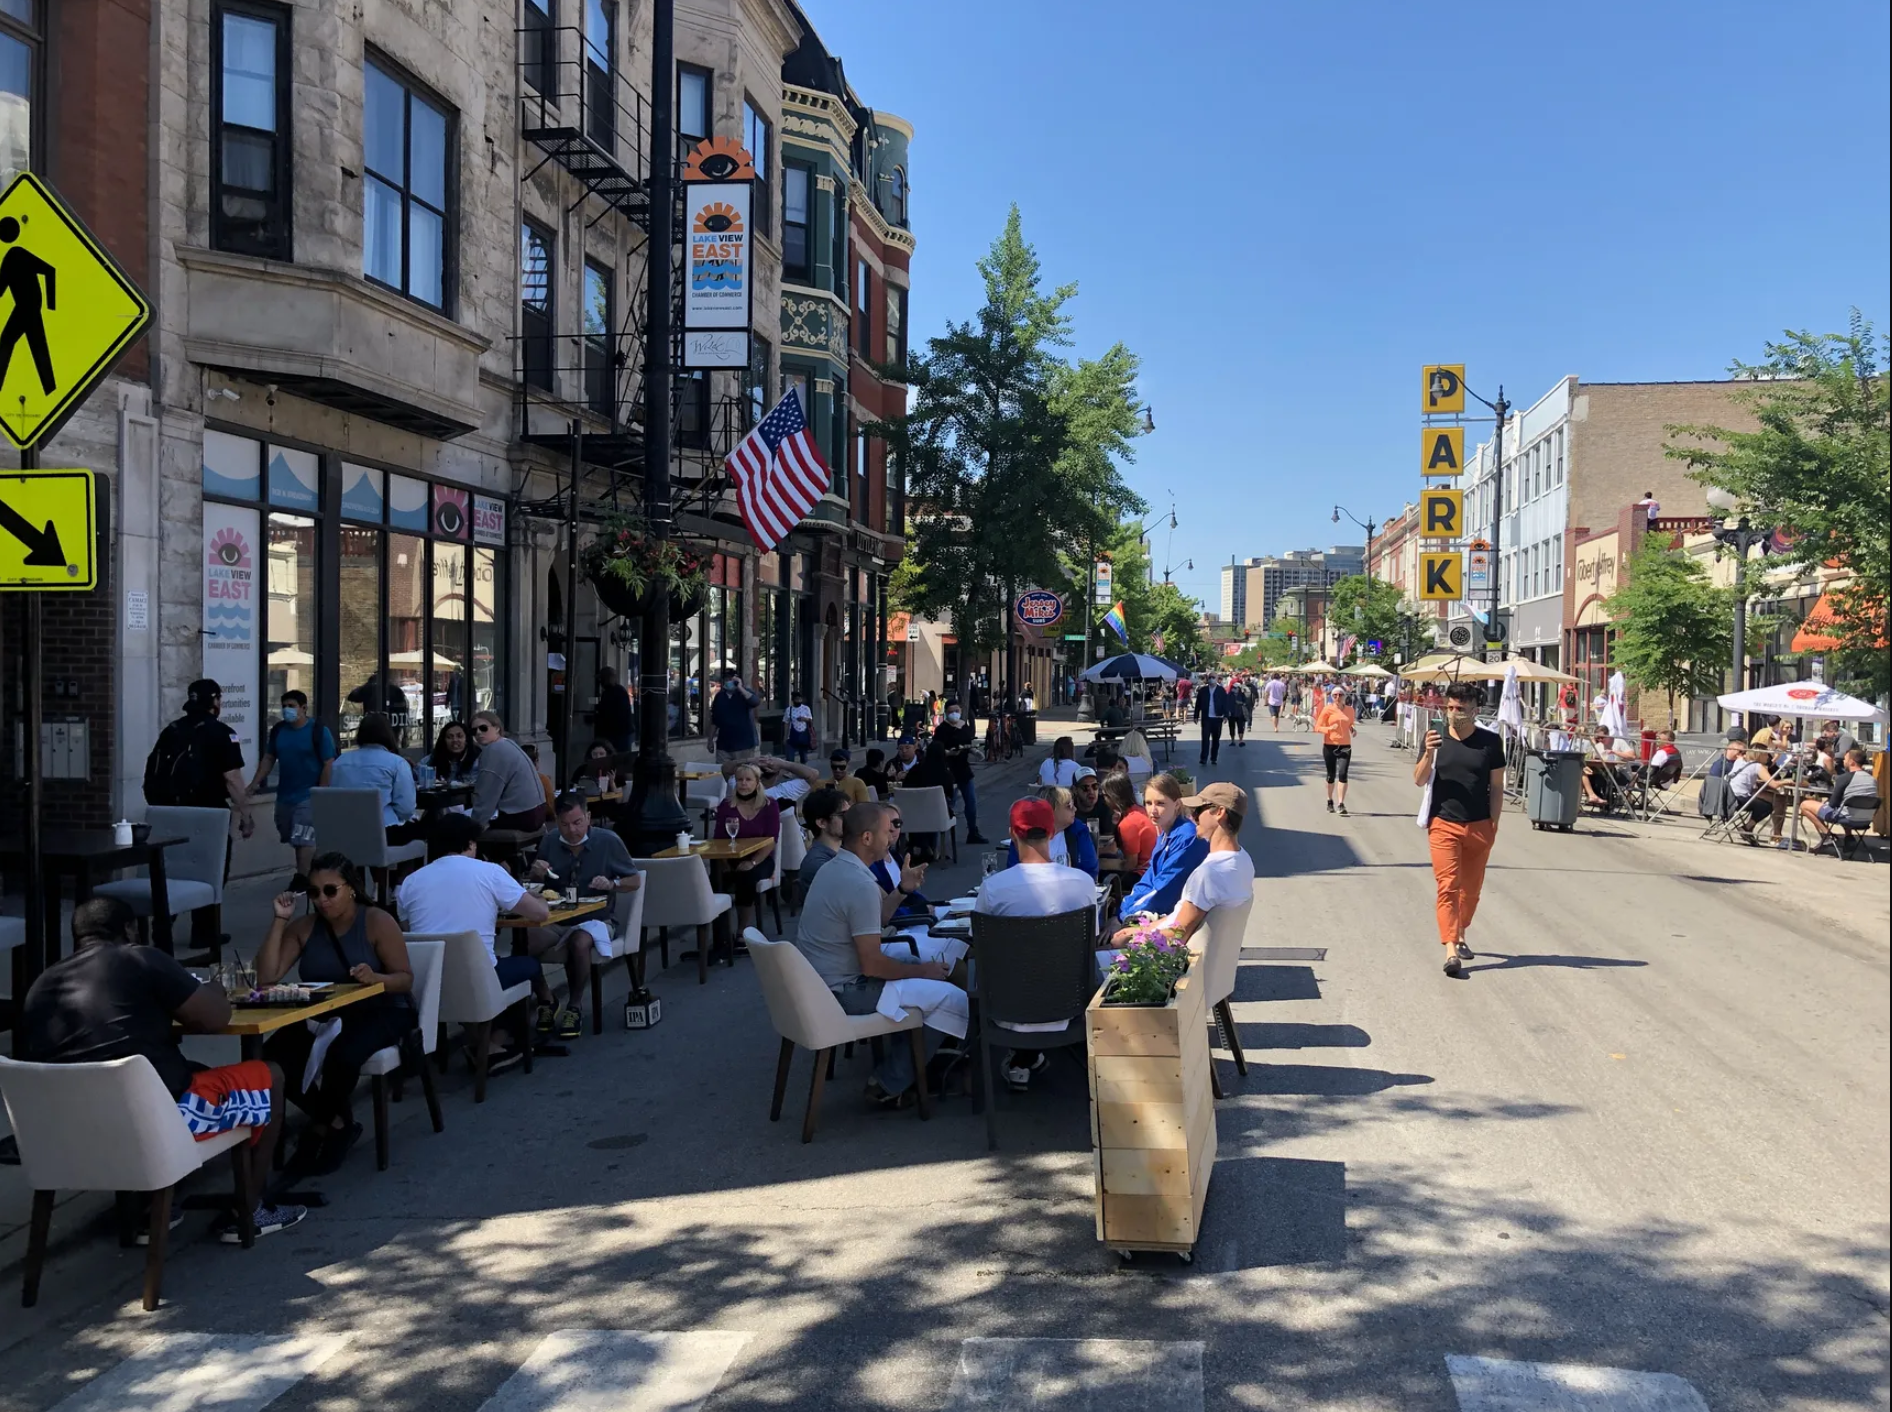 People dining on tables in the street